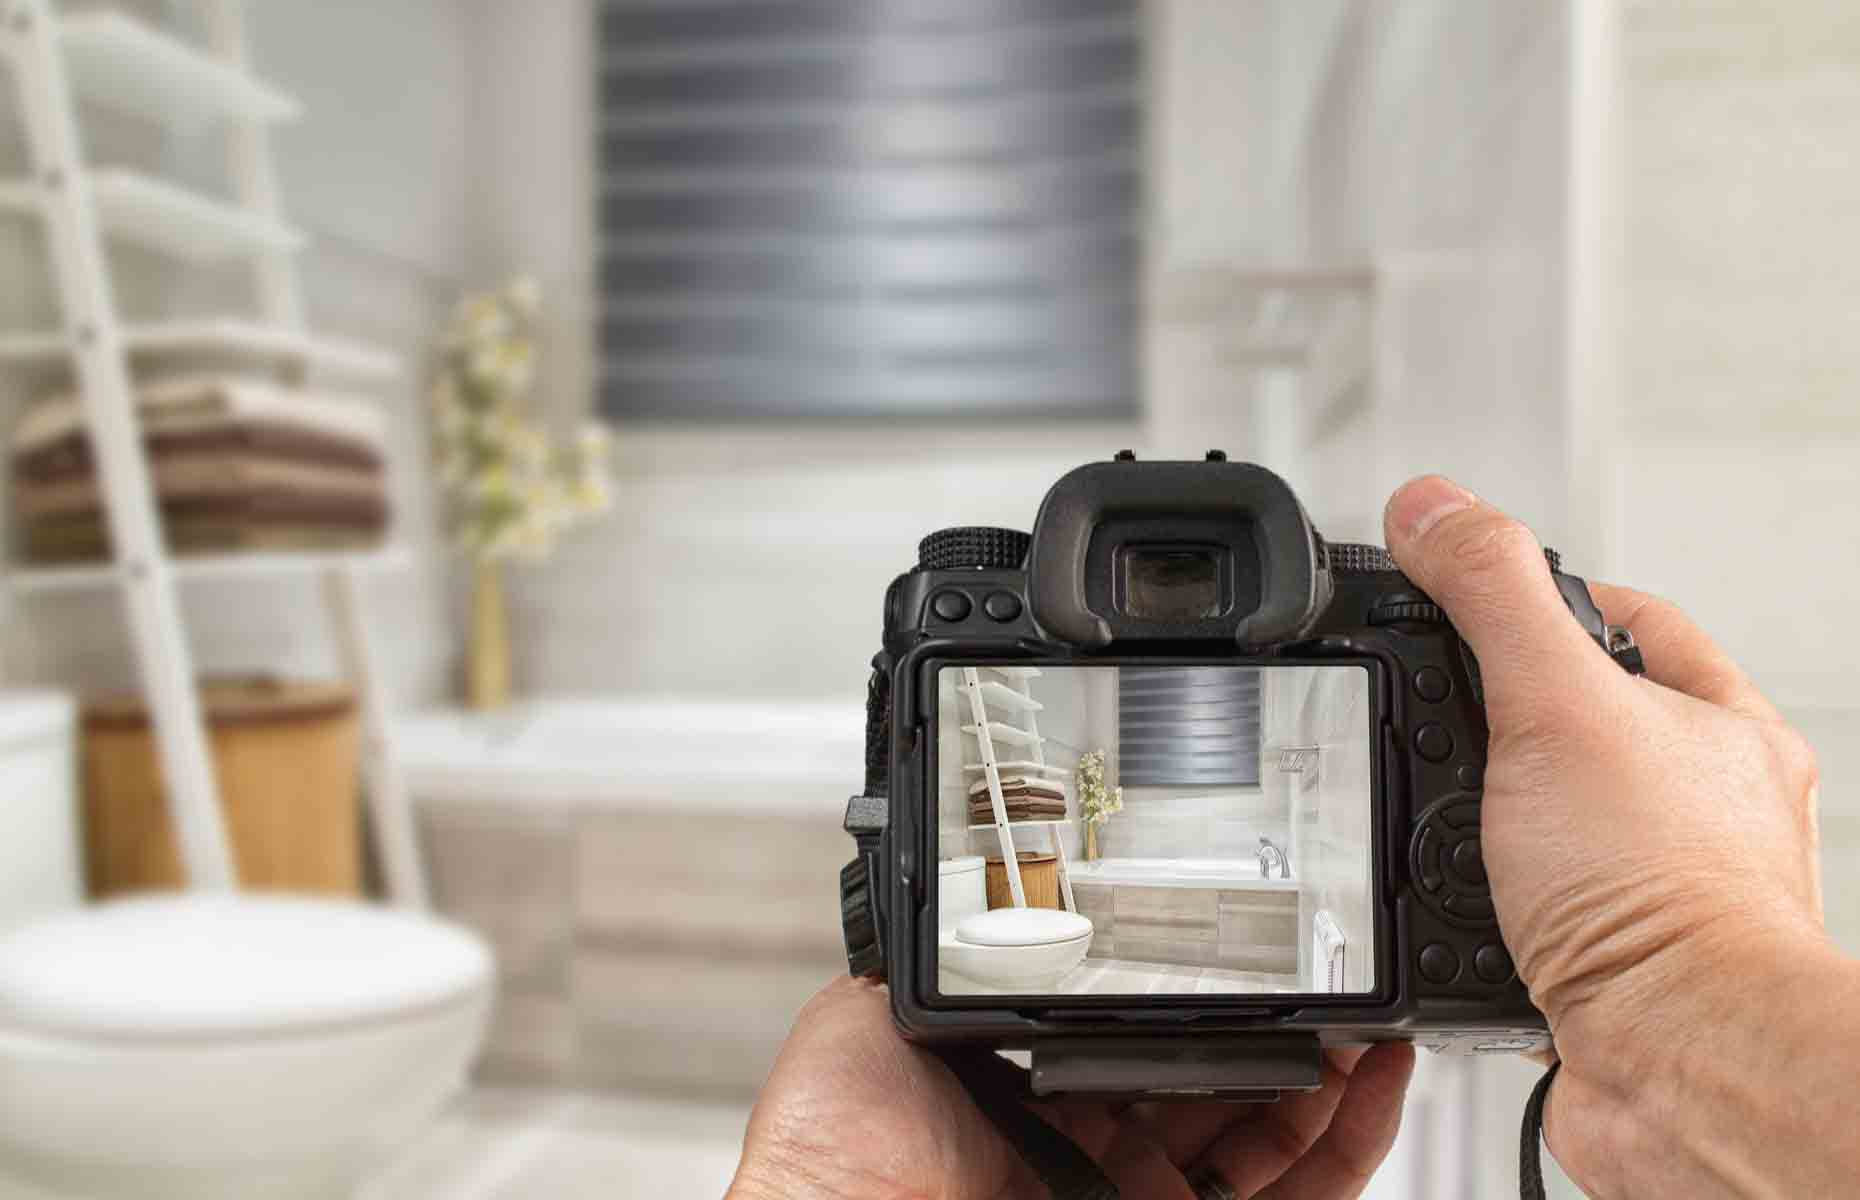 Professional, well-lit images will make your listing more enticing to buyers. Image: DD Images / Shutterstock